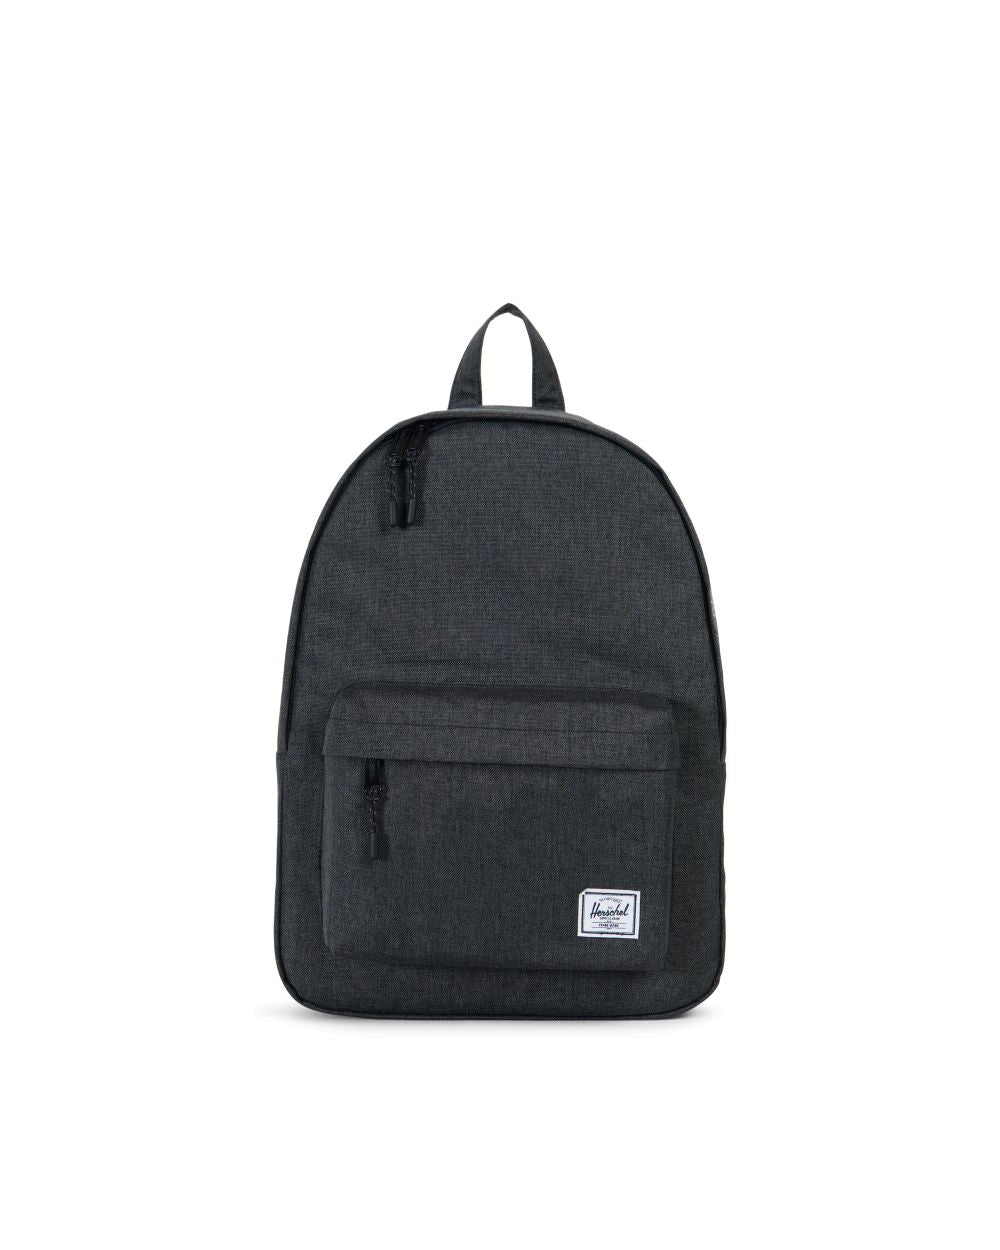 Herschel Supply Co. - Classic Backpack, Black Crosshatch